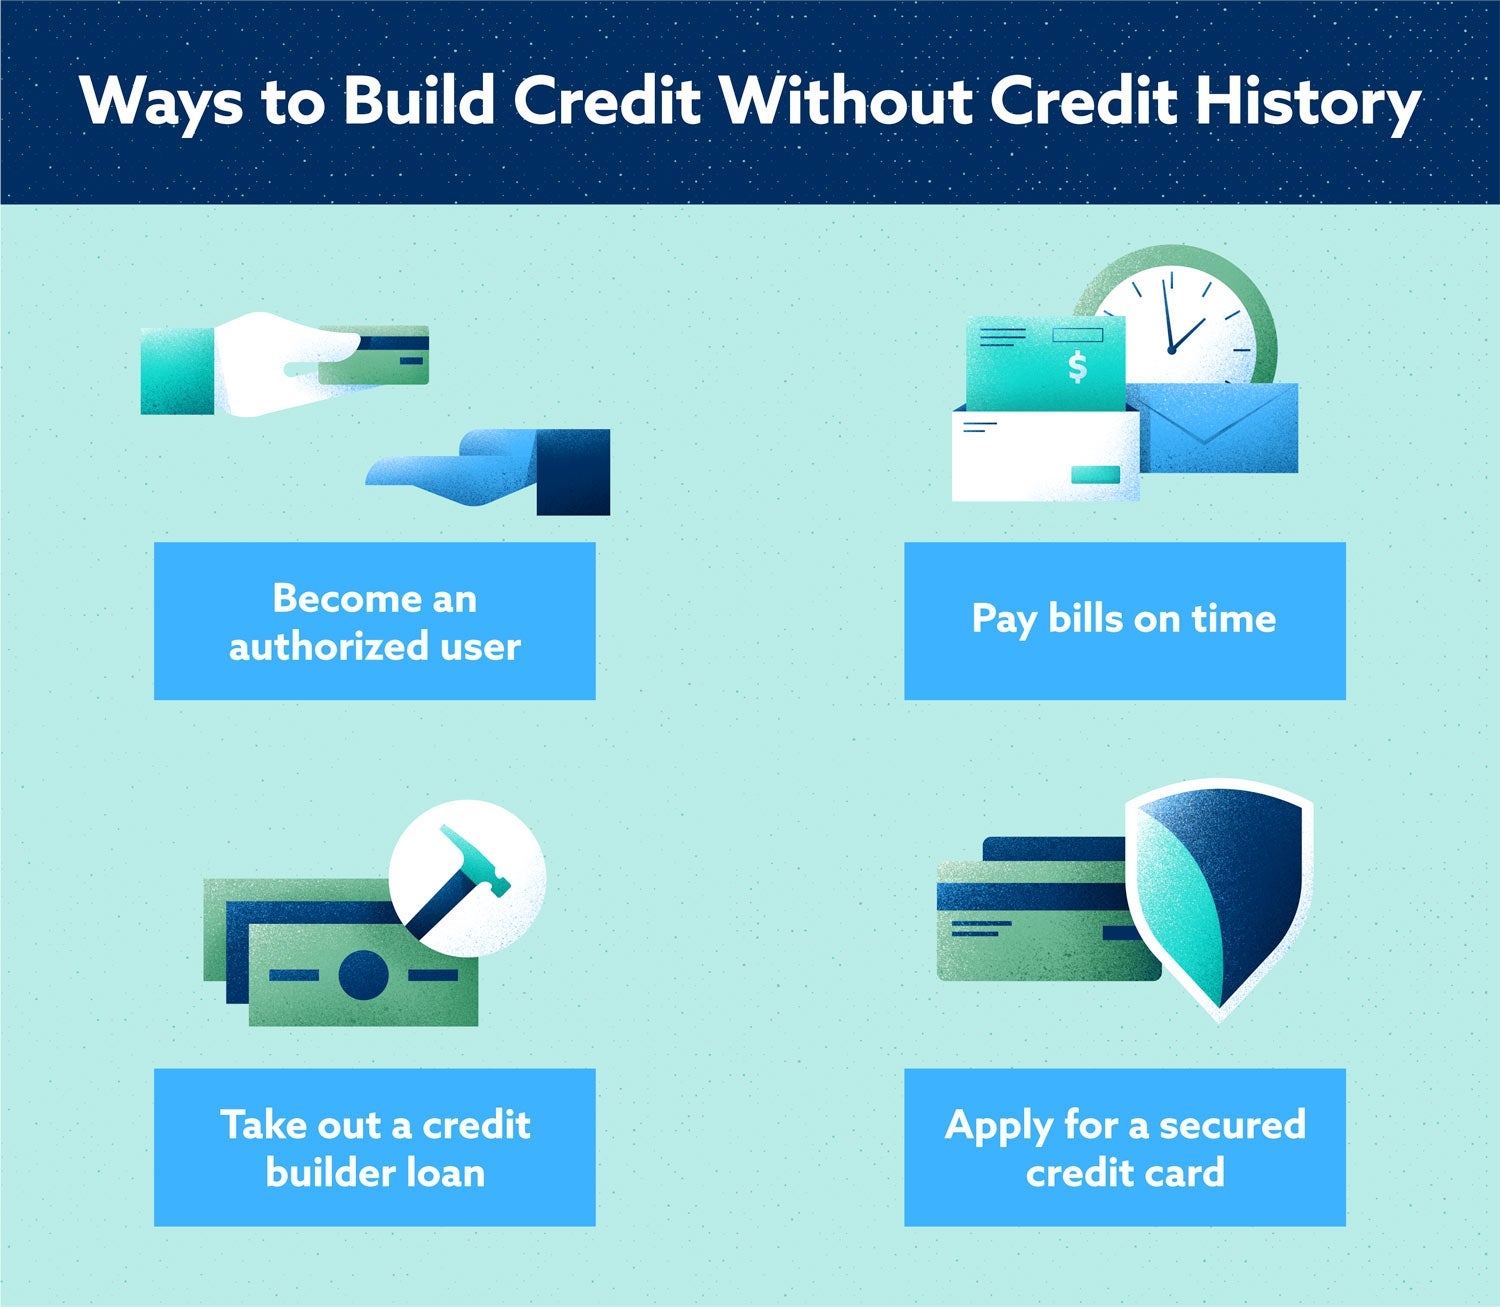 Ways to Build Credit Without a Credit History Image